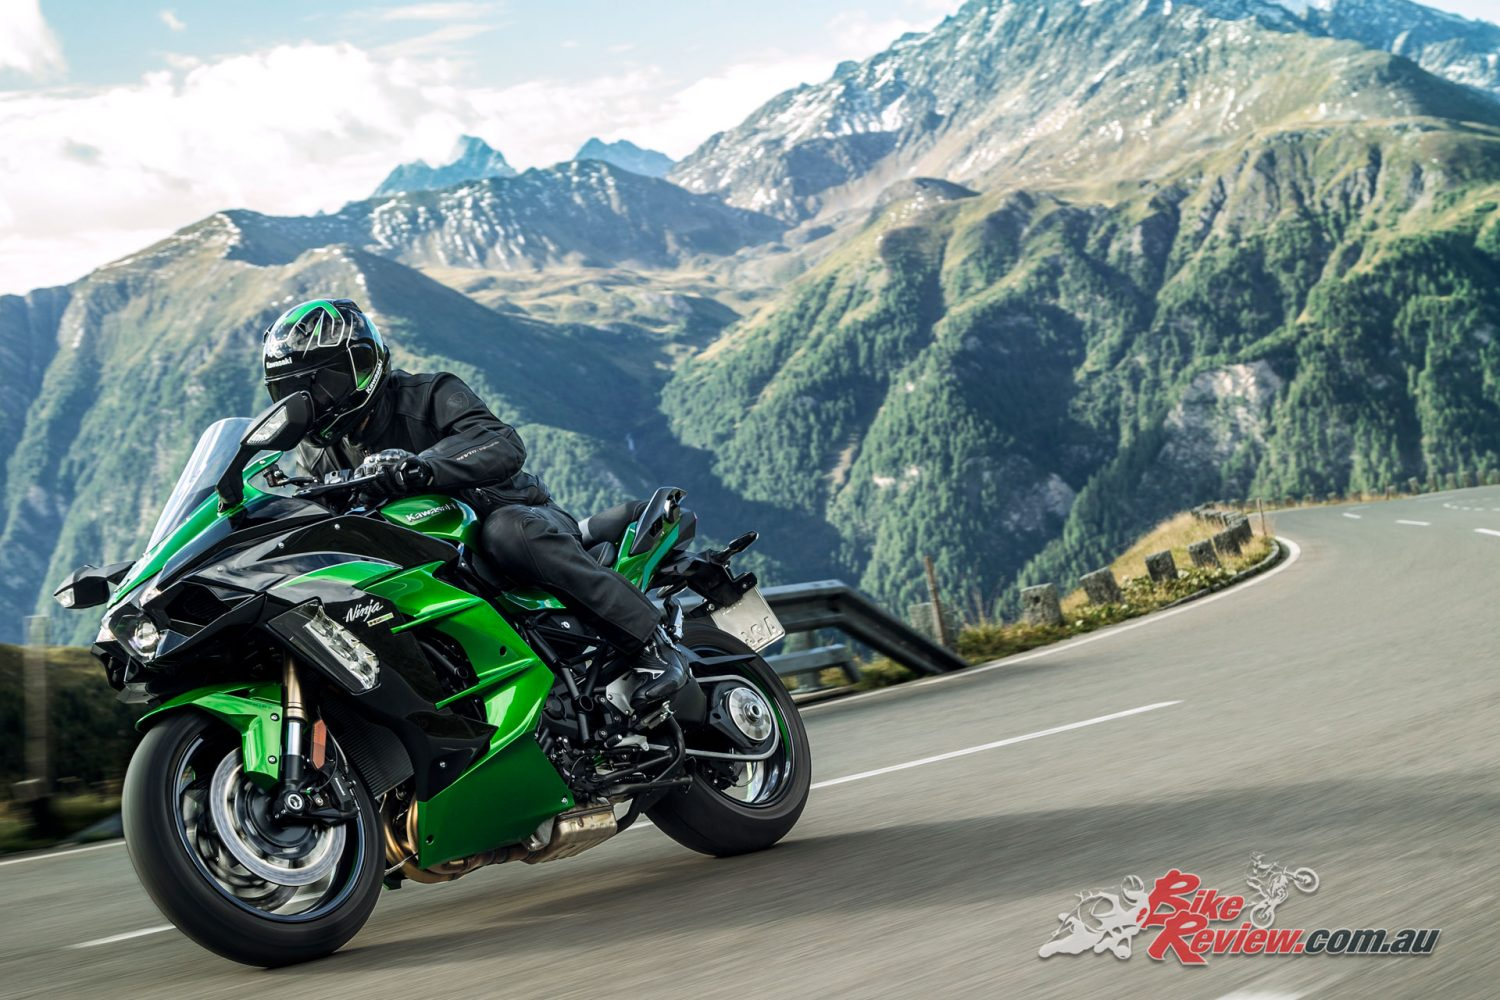 Kawasaki unveil Ninja H2 SX, Ninja 400 & Z900RS at EICMA ...